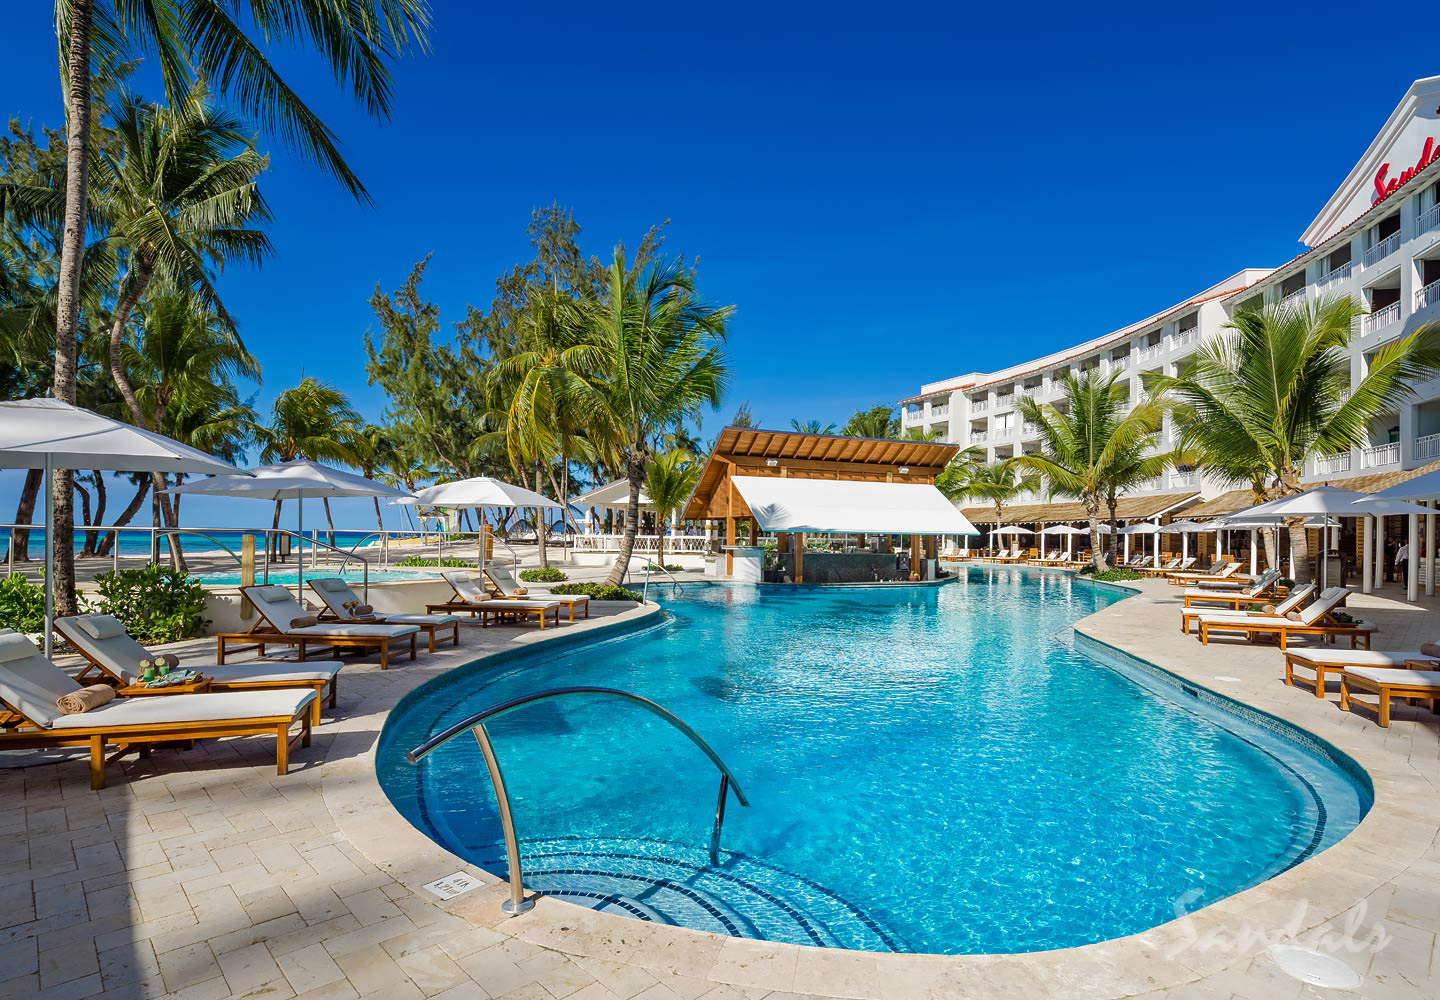 Travel Agency All-Inclusive Resort Sandals Barbados 01